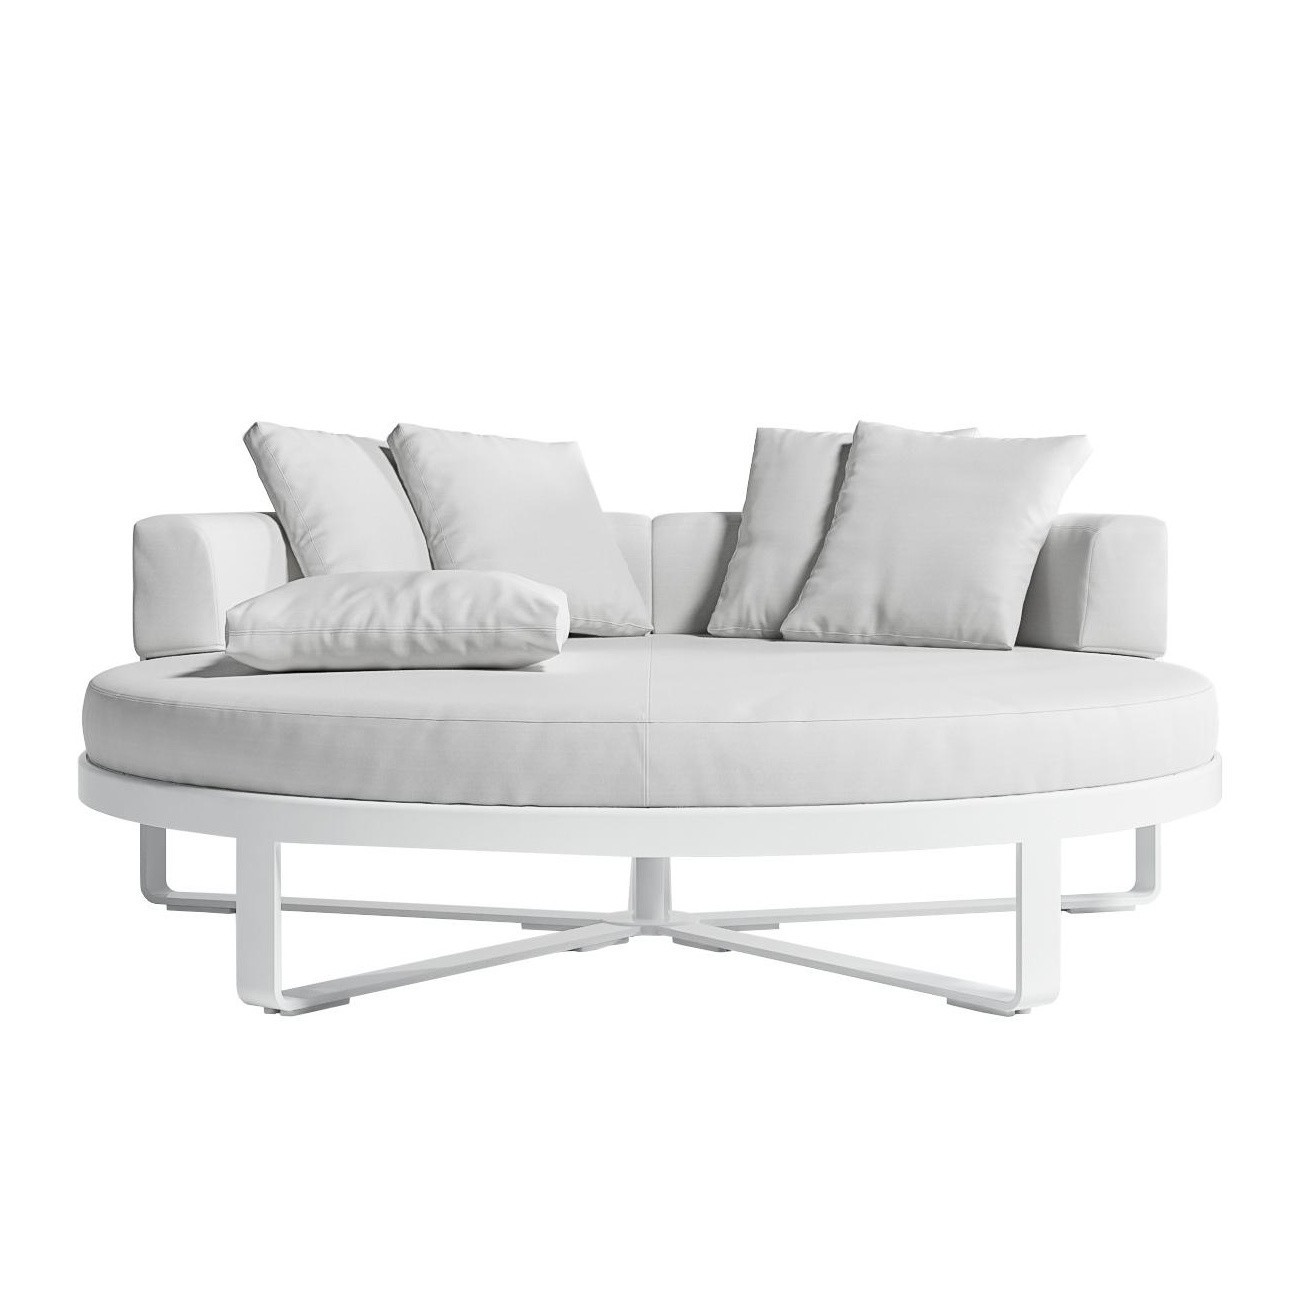 flat outdoor chill bed daybed round